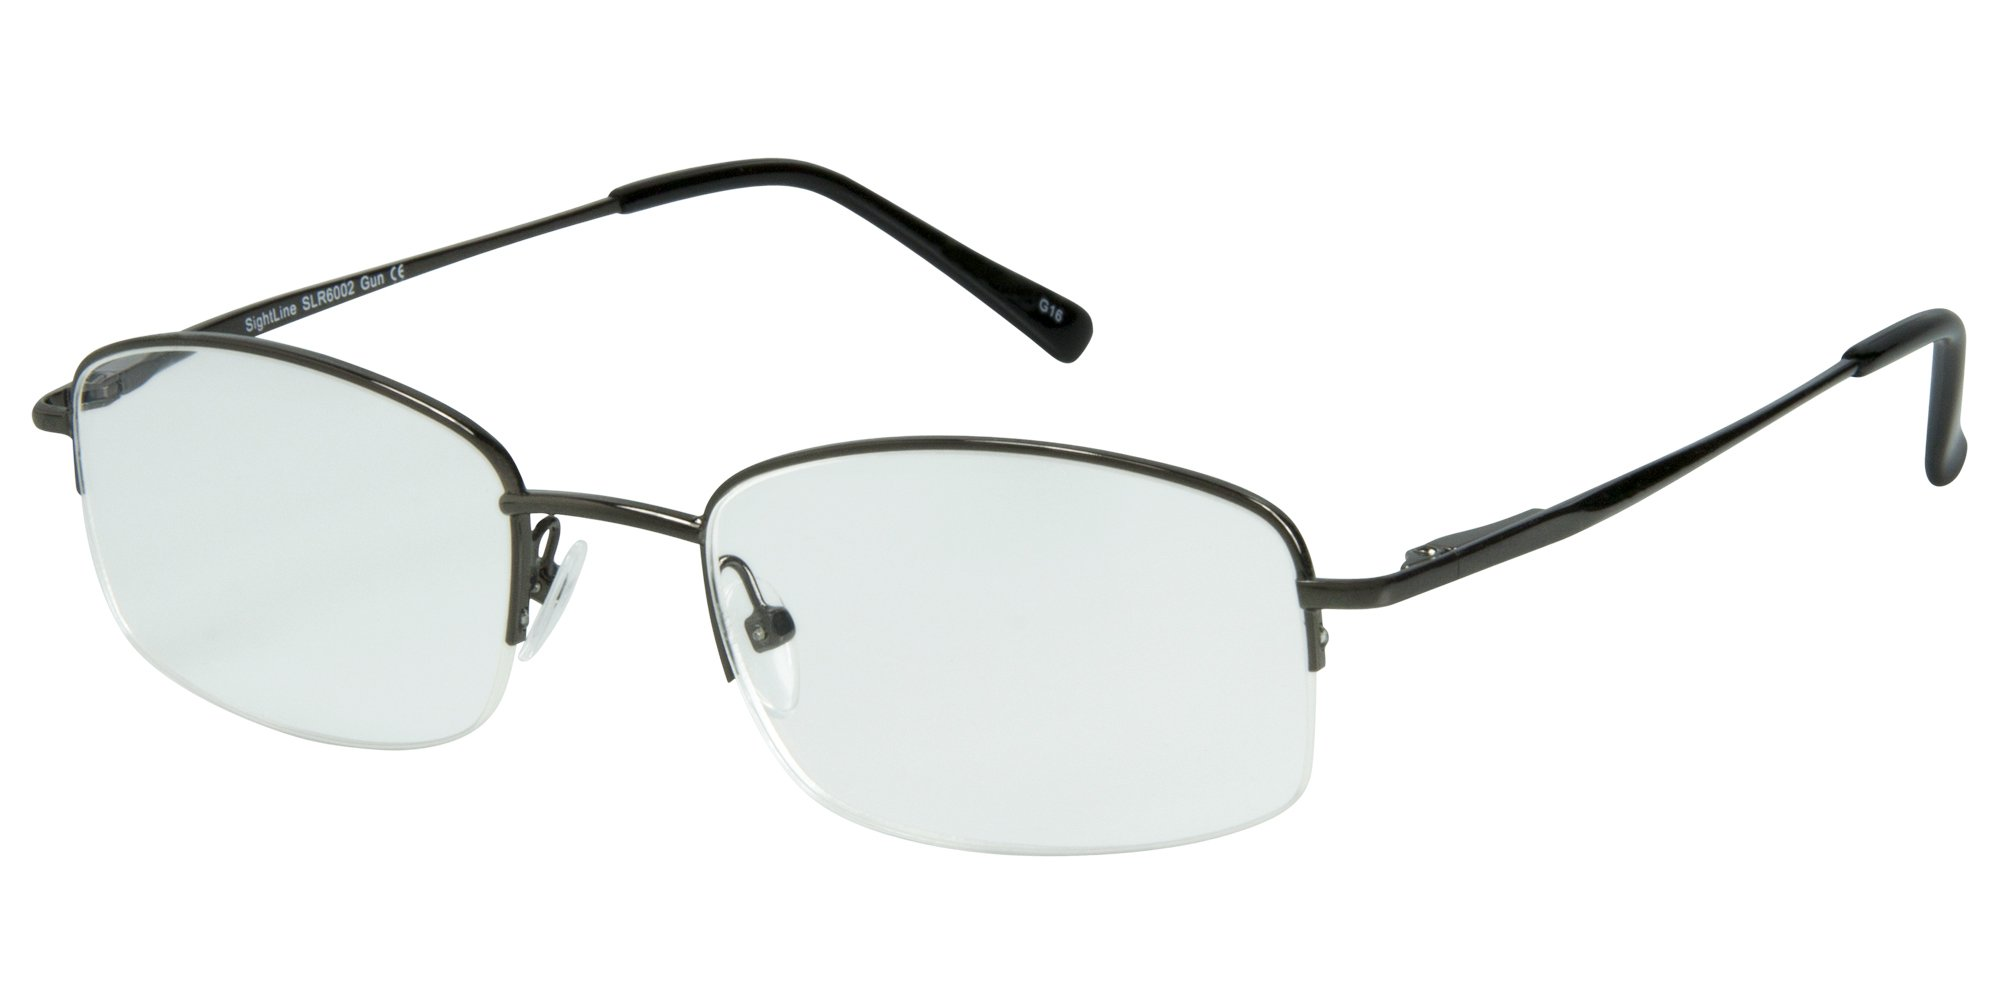 Sightline Multifocal Computer Reading Glasses 6002 Semi-Rimless Designer Frames (2.00, Gunmetal)